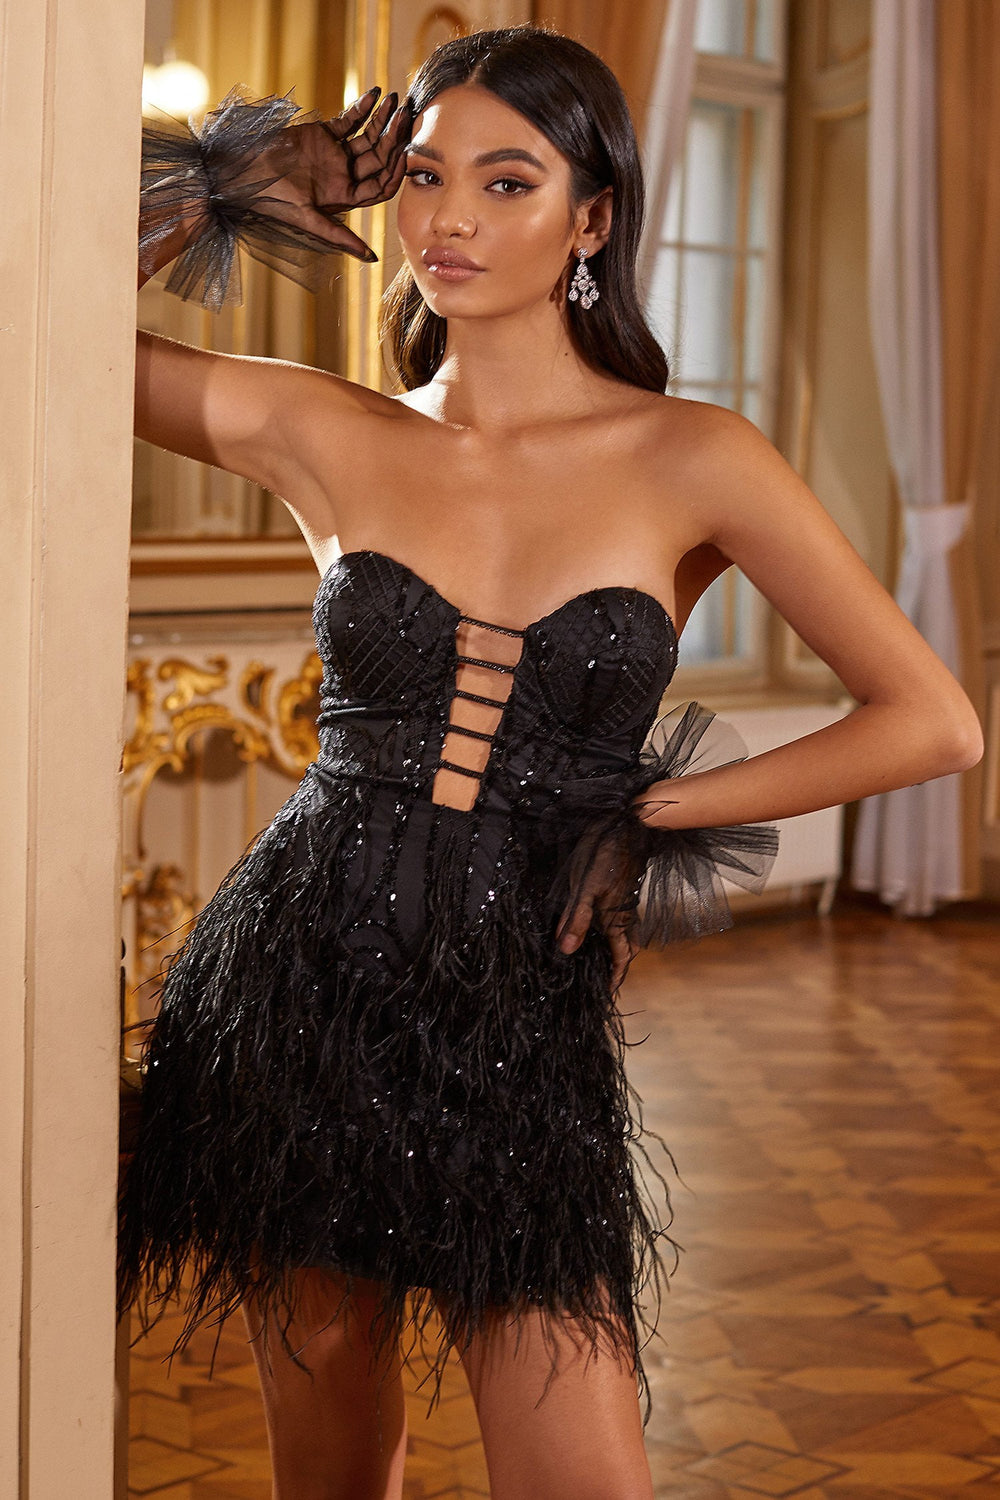 Cameron - Black Strapless Mini Dress with Sequins, Feathers & Cut Outs